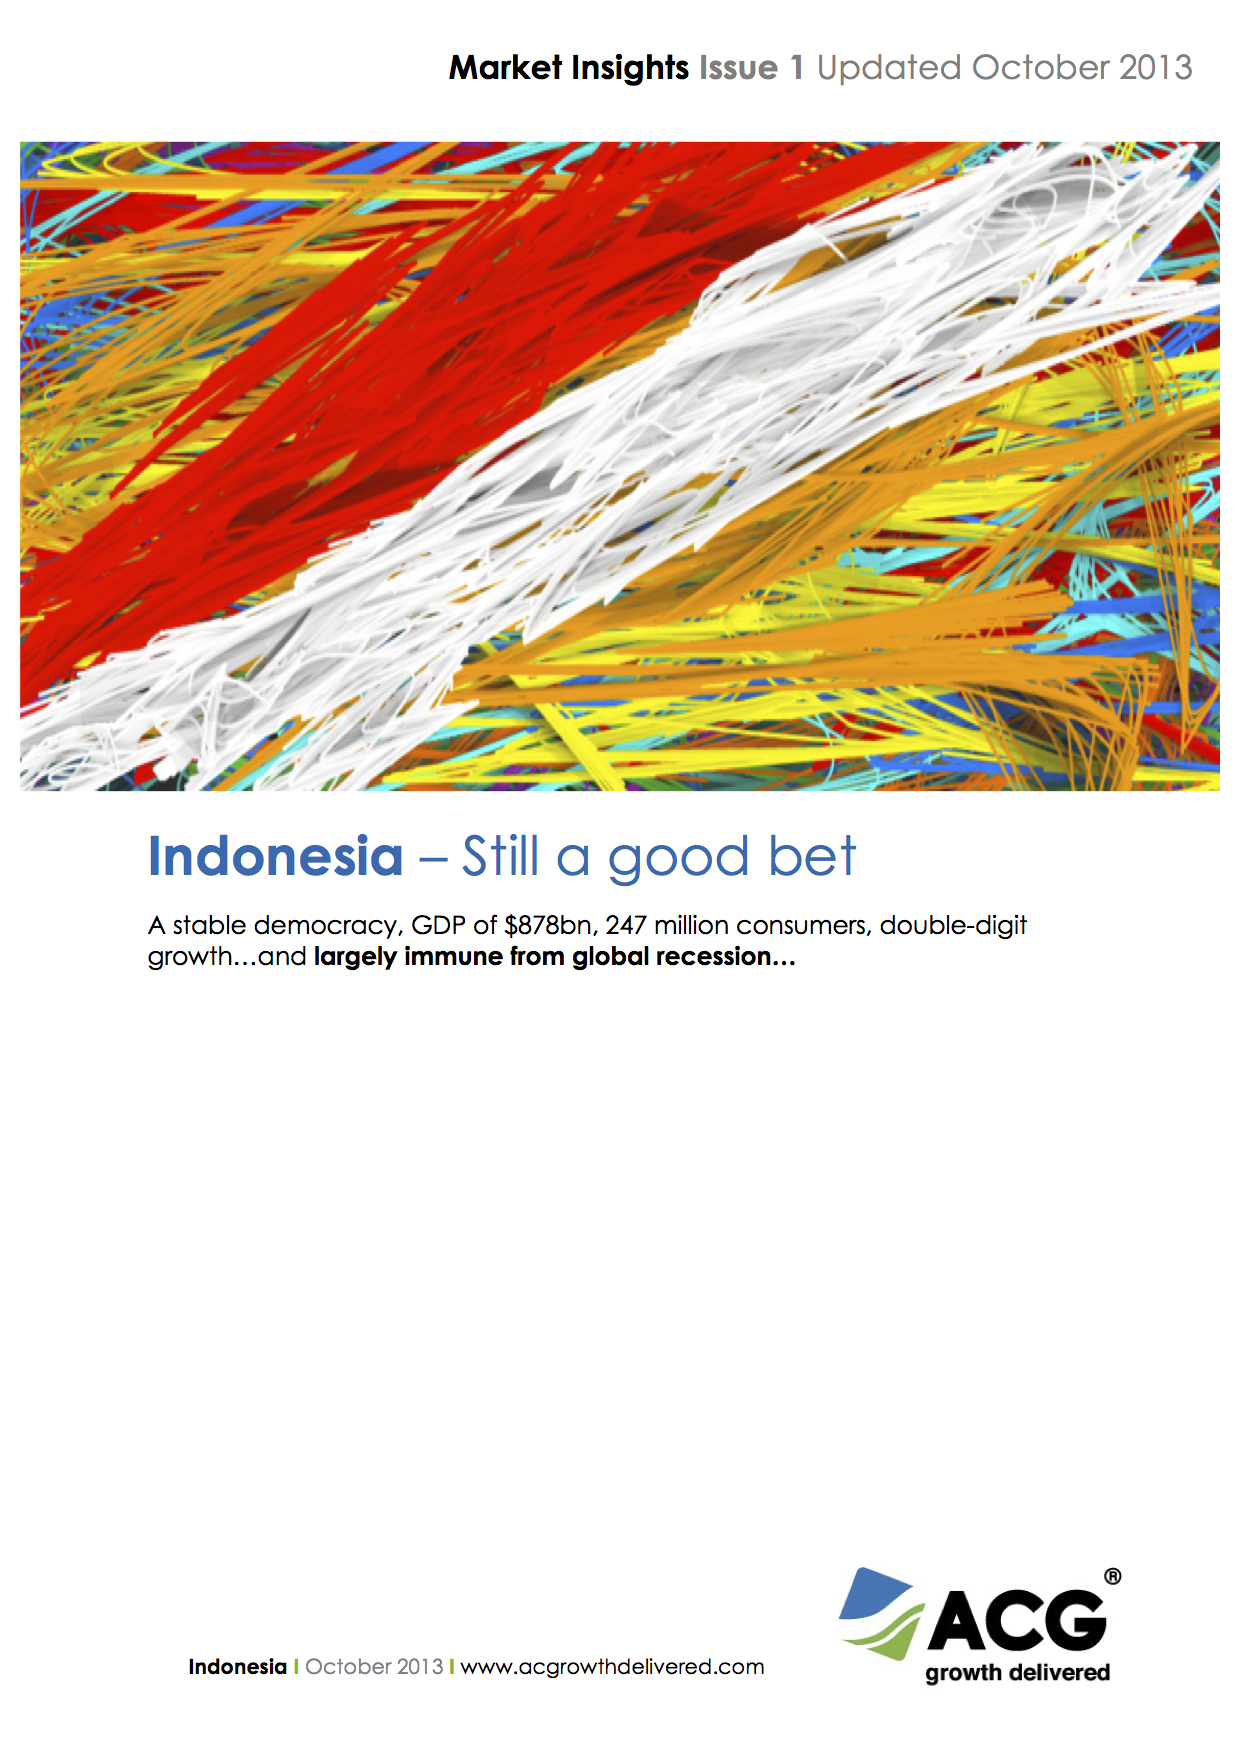 Indonesia - Still a good bet